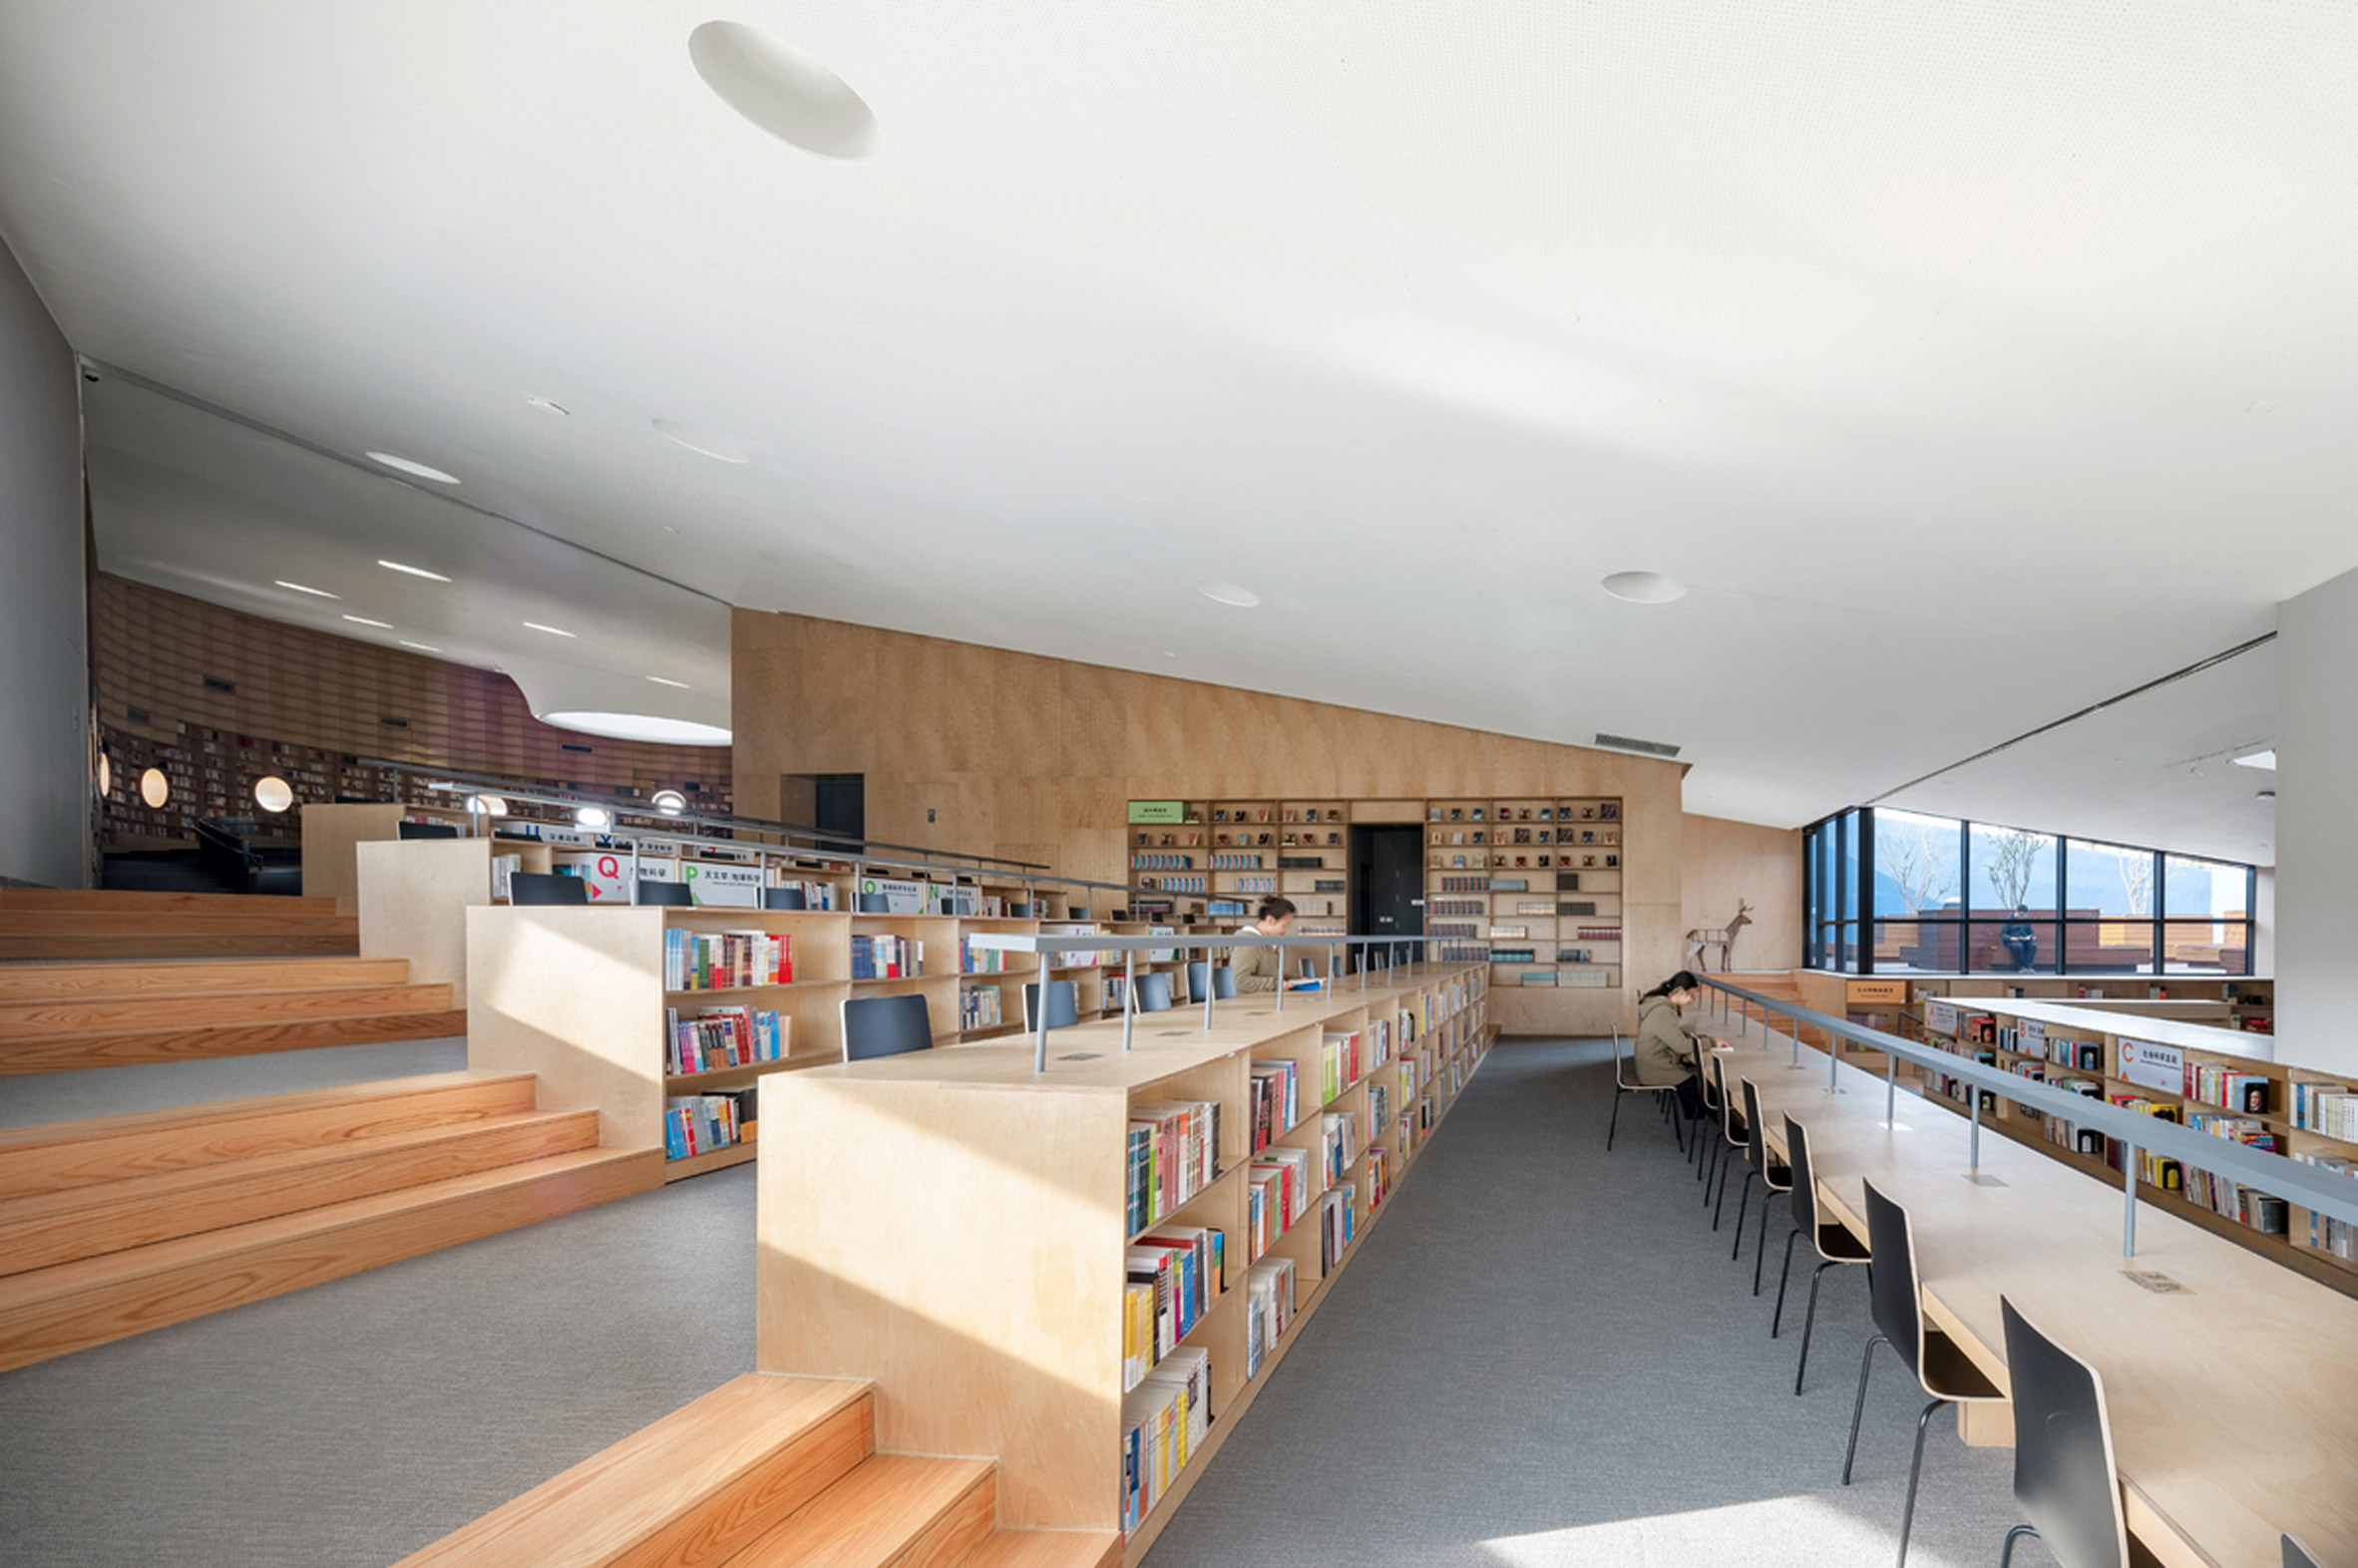 Stepped reading spaces